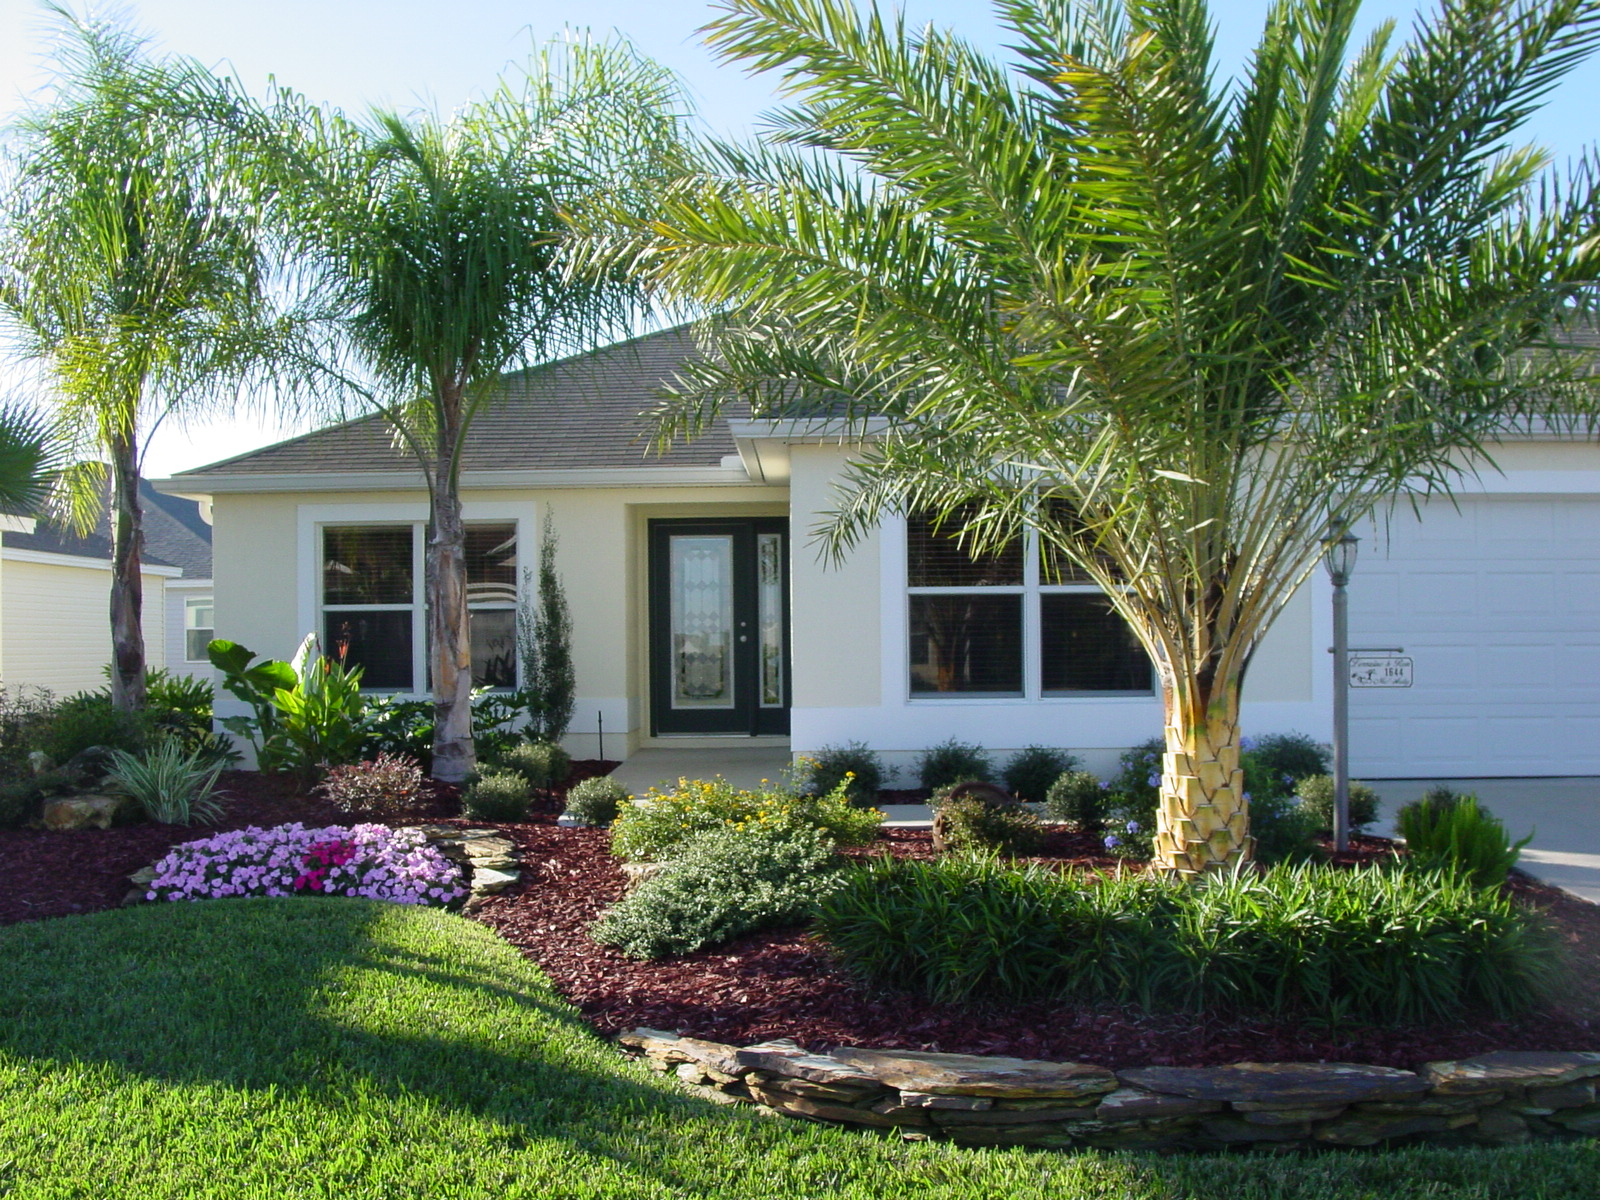 Florida garden landscape ideas photograph rons landscaping for Home garden ideas